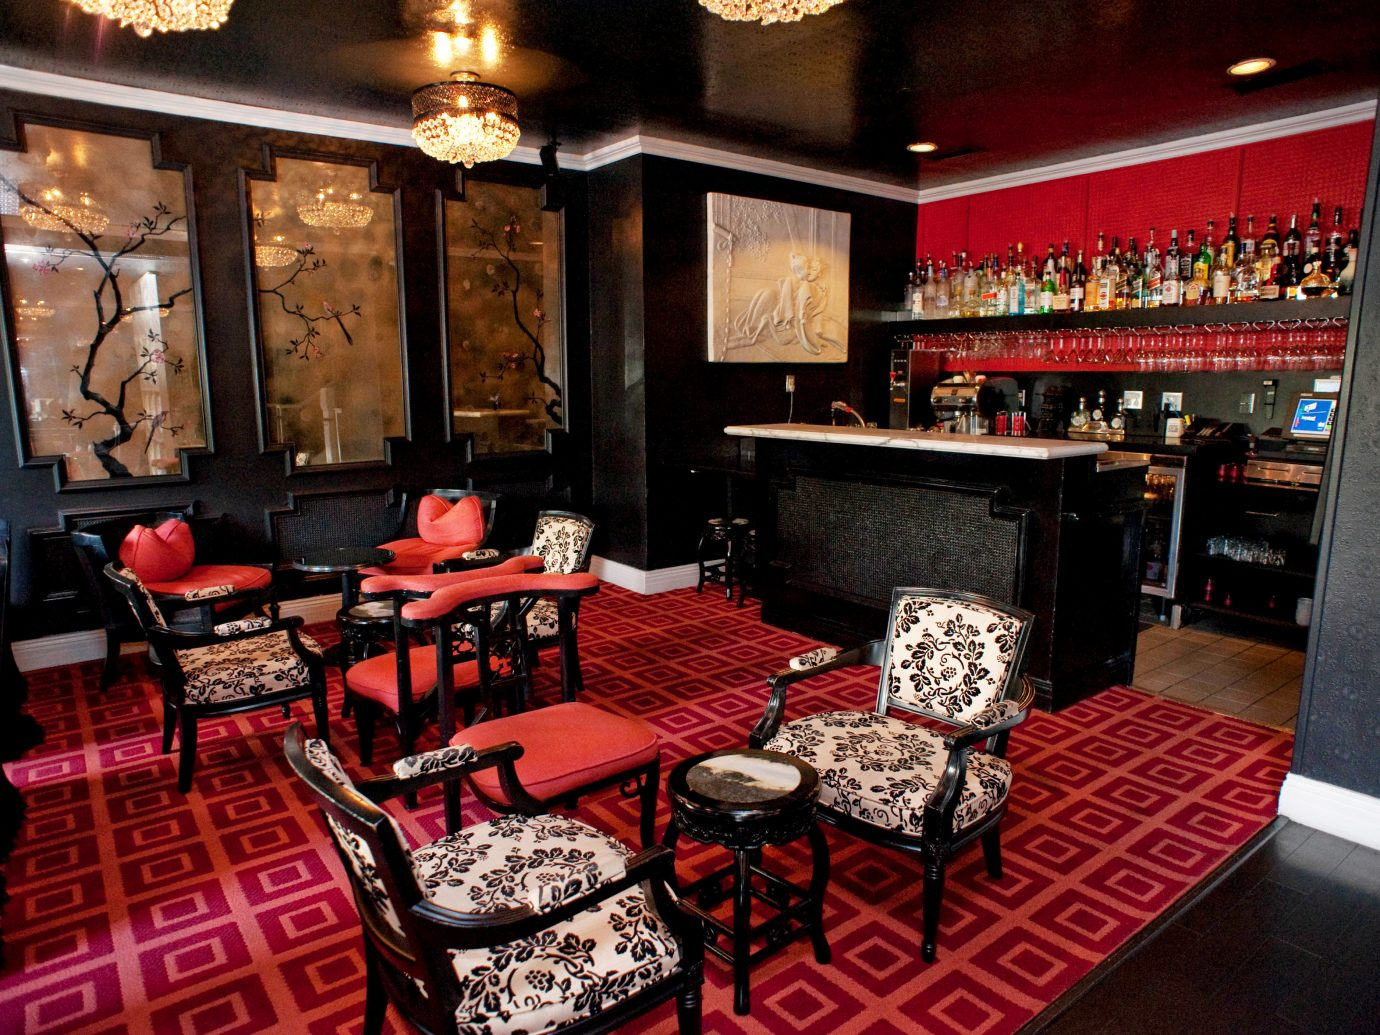 Hotels indoor floor red room restaurant Bar interior design area furniture several